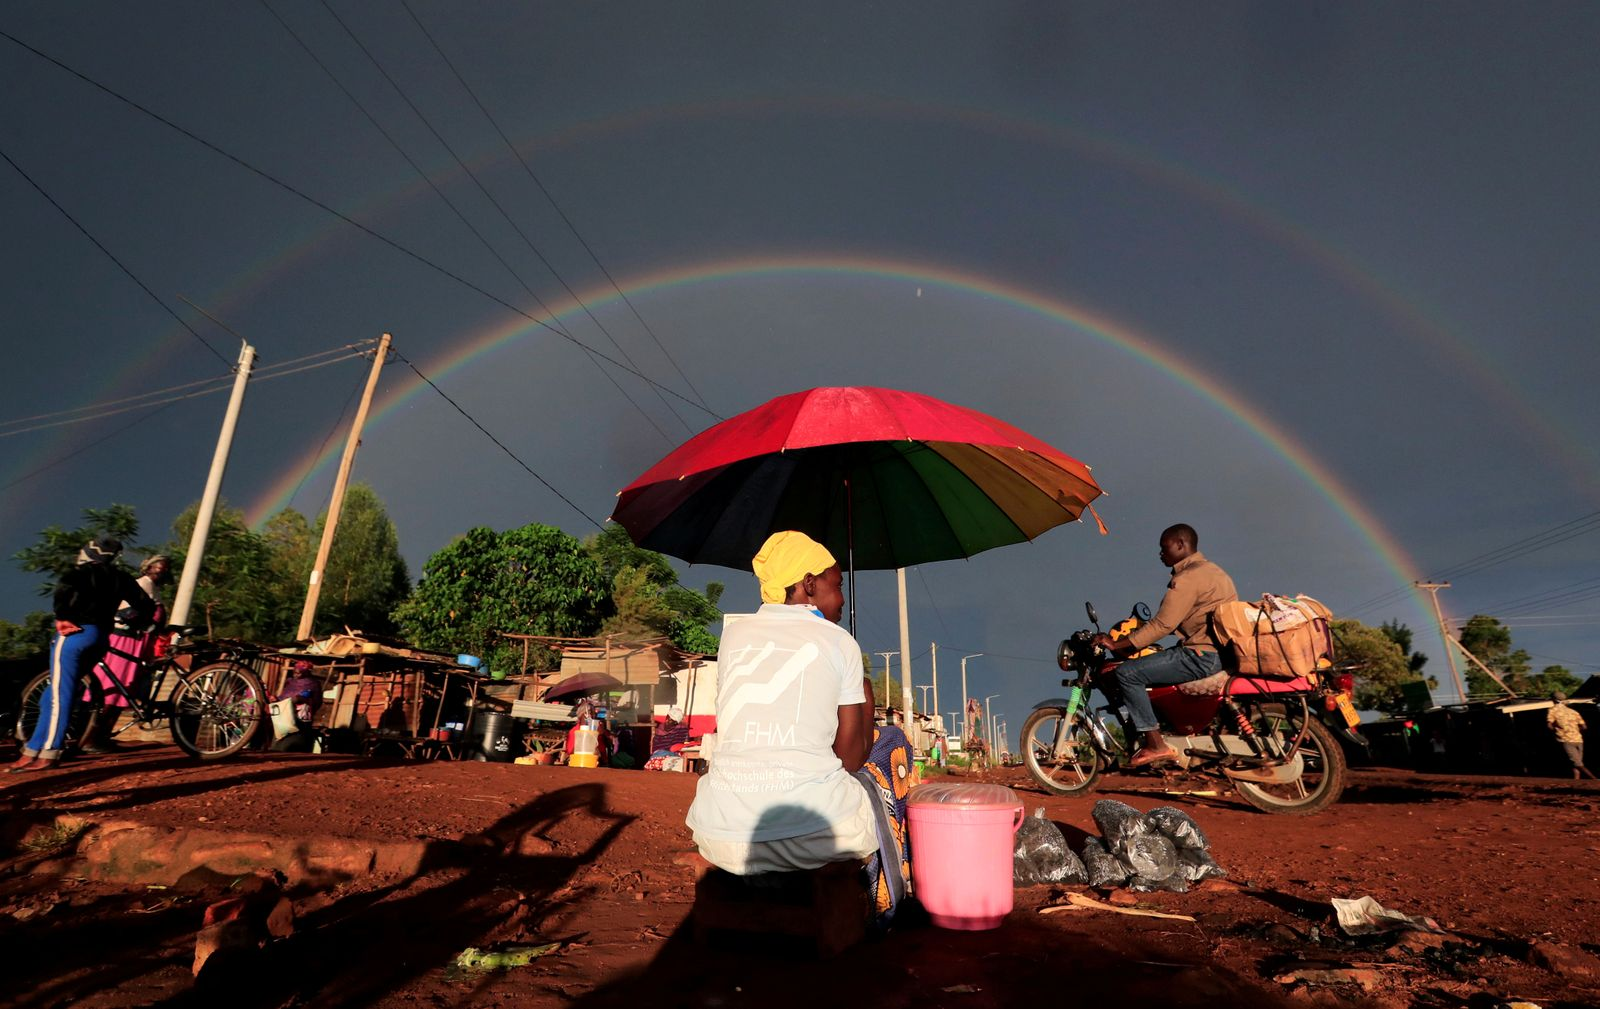 A double rainbow is seen above a woman holding an umbrella and selling snacks along the road in Siaya county